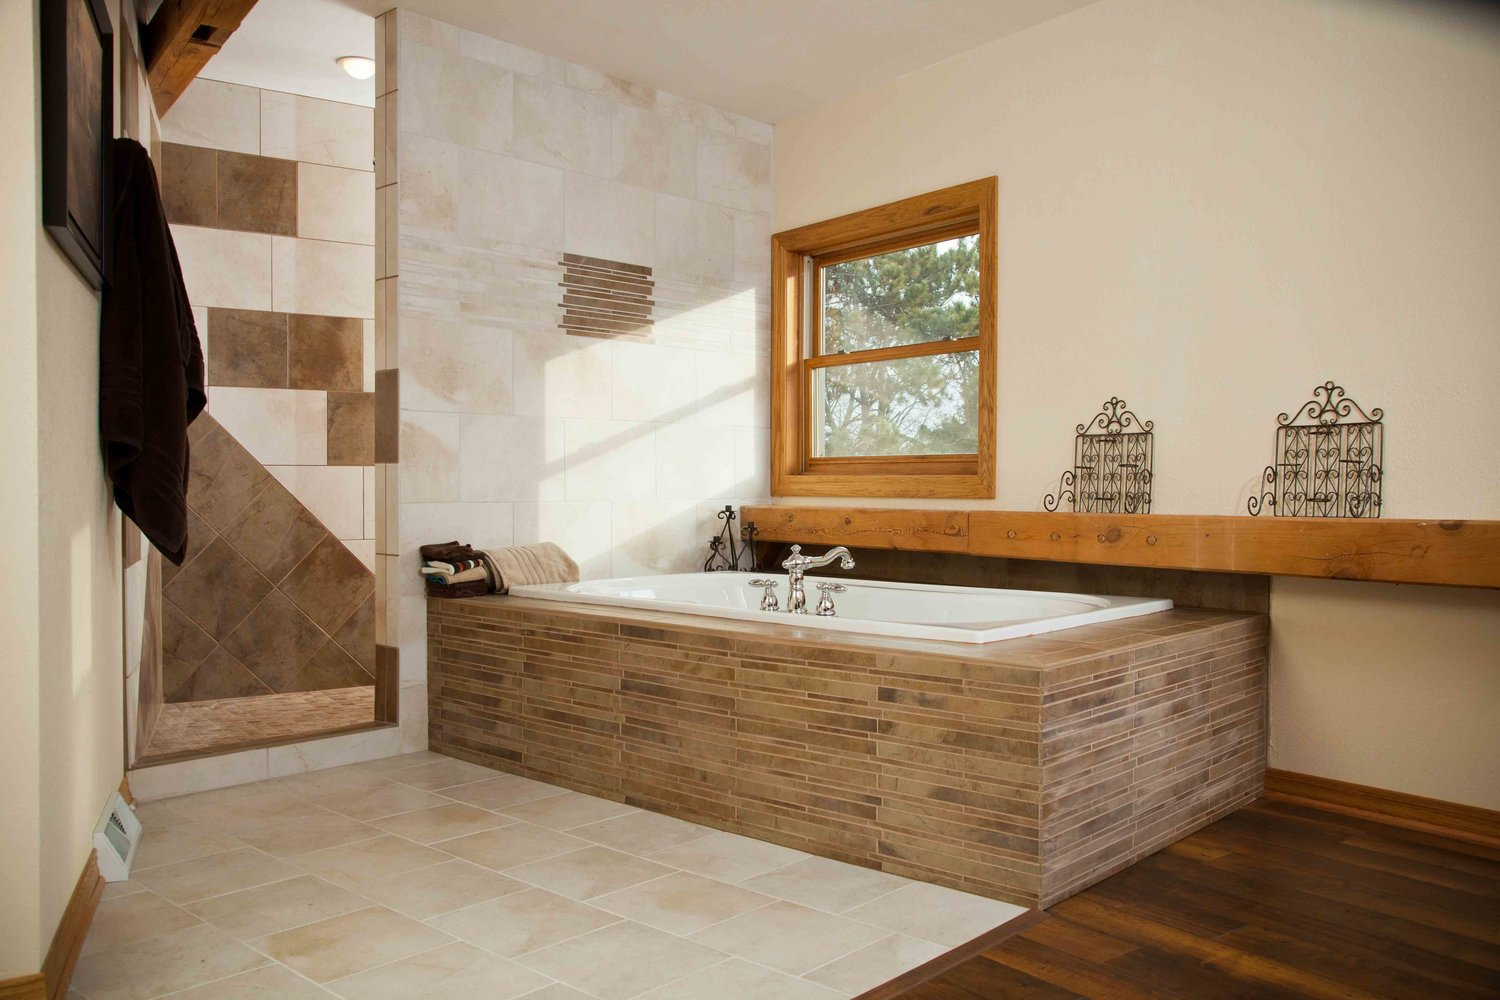 Planning A Low Maintenance Easy To Clean Bathroom Design Degnan - Easy to clean bathroom tile